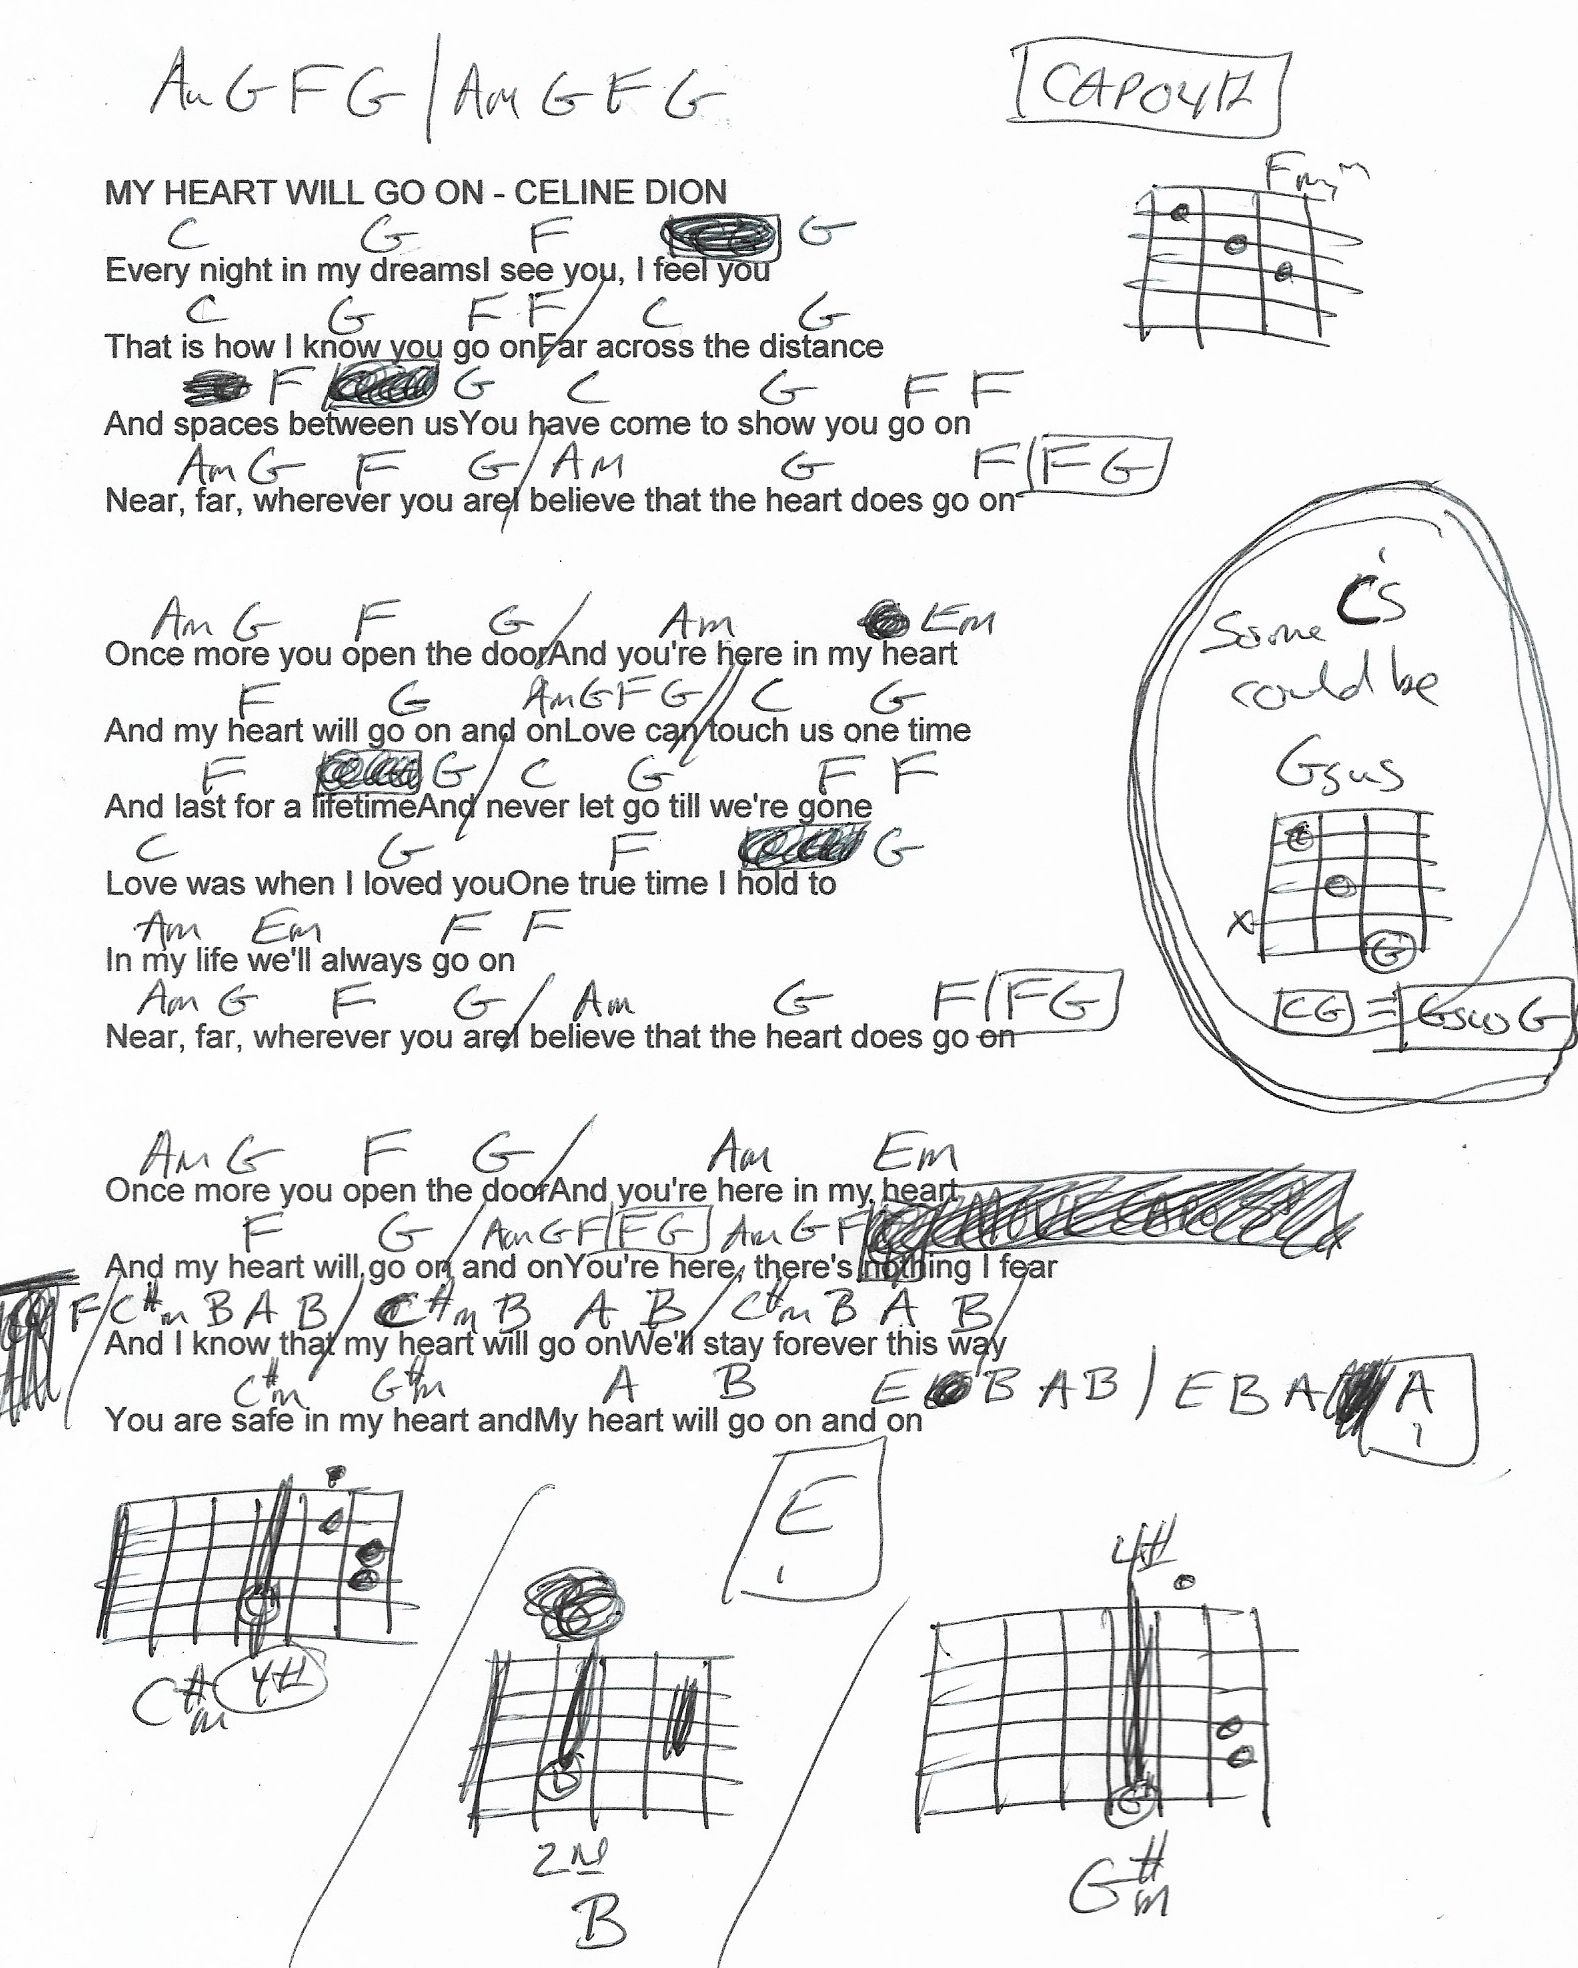 My Heart Will Go On Celine Dion Guitar Chord Chart Capo 4th Slightly Simplified Guitar Chord Chart Celine Dion Guitar Chords